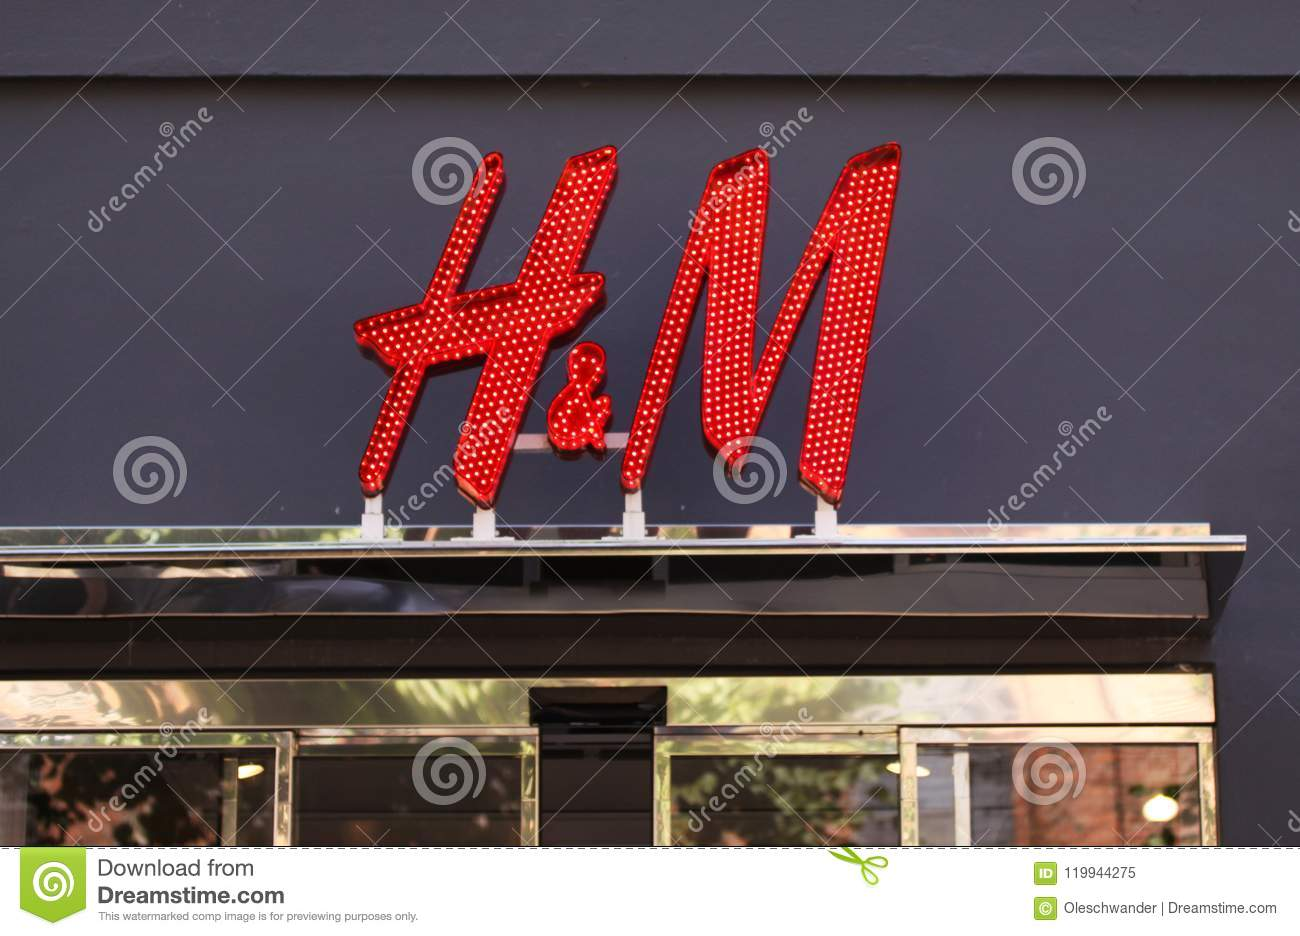 d035c9f81a7 H M Hennes   Mauritz AB is a Swedish multinational retail-clothing company.